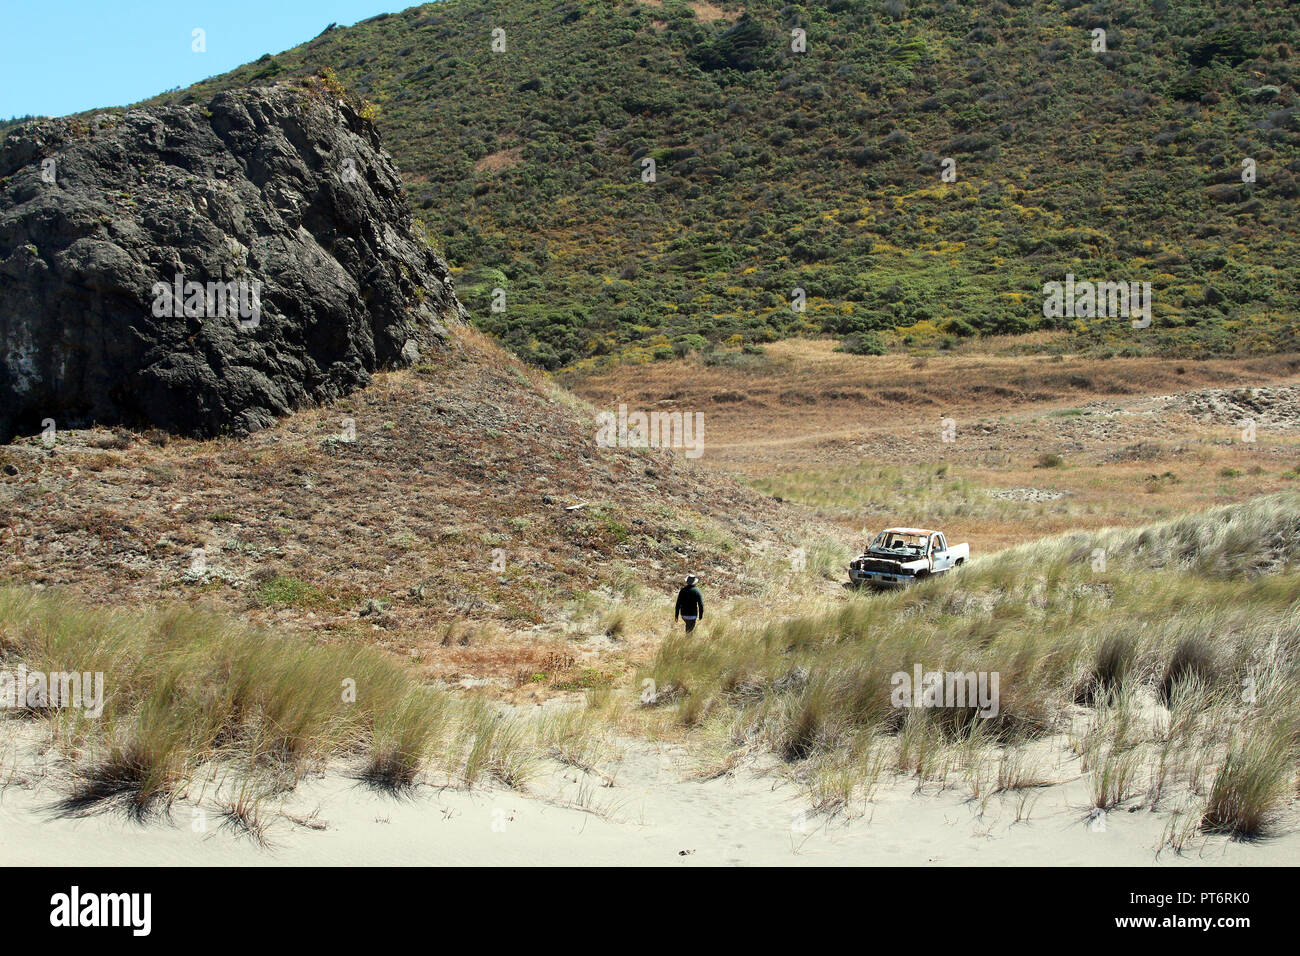 Man walks across sand dunes and grass toward an abandoned truck in northern California - Stock Image